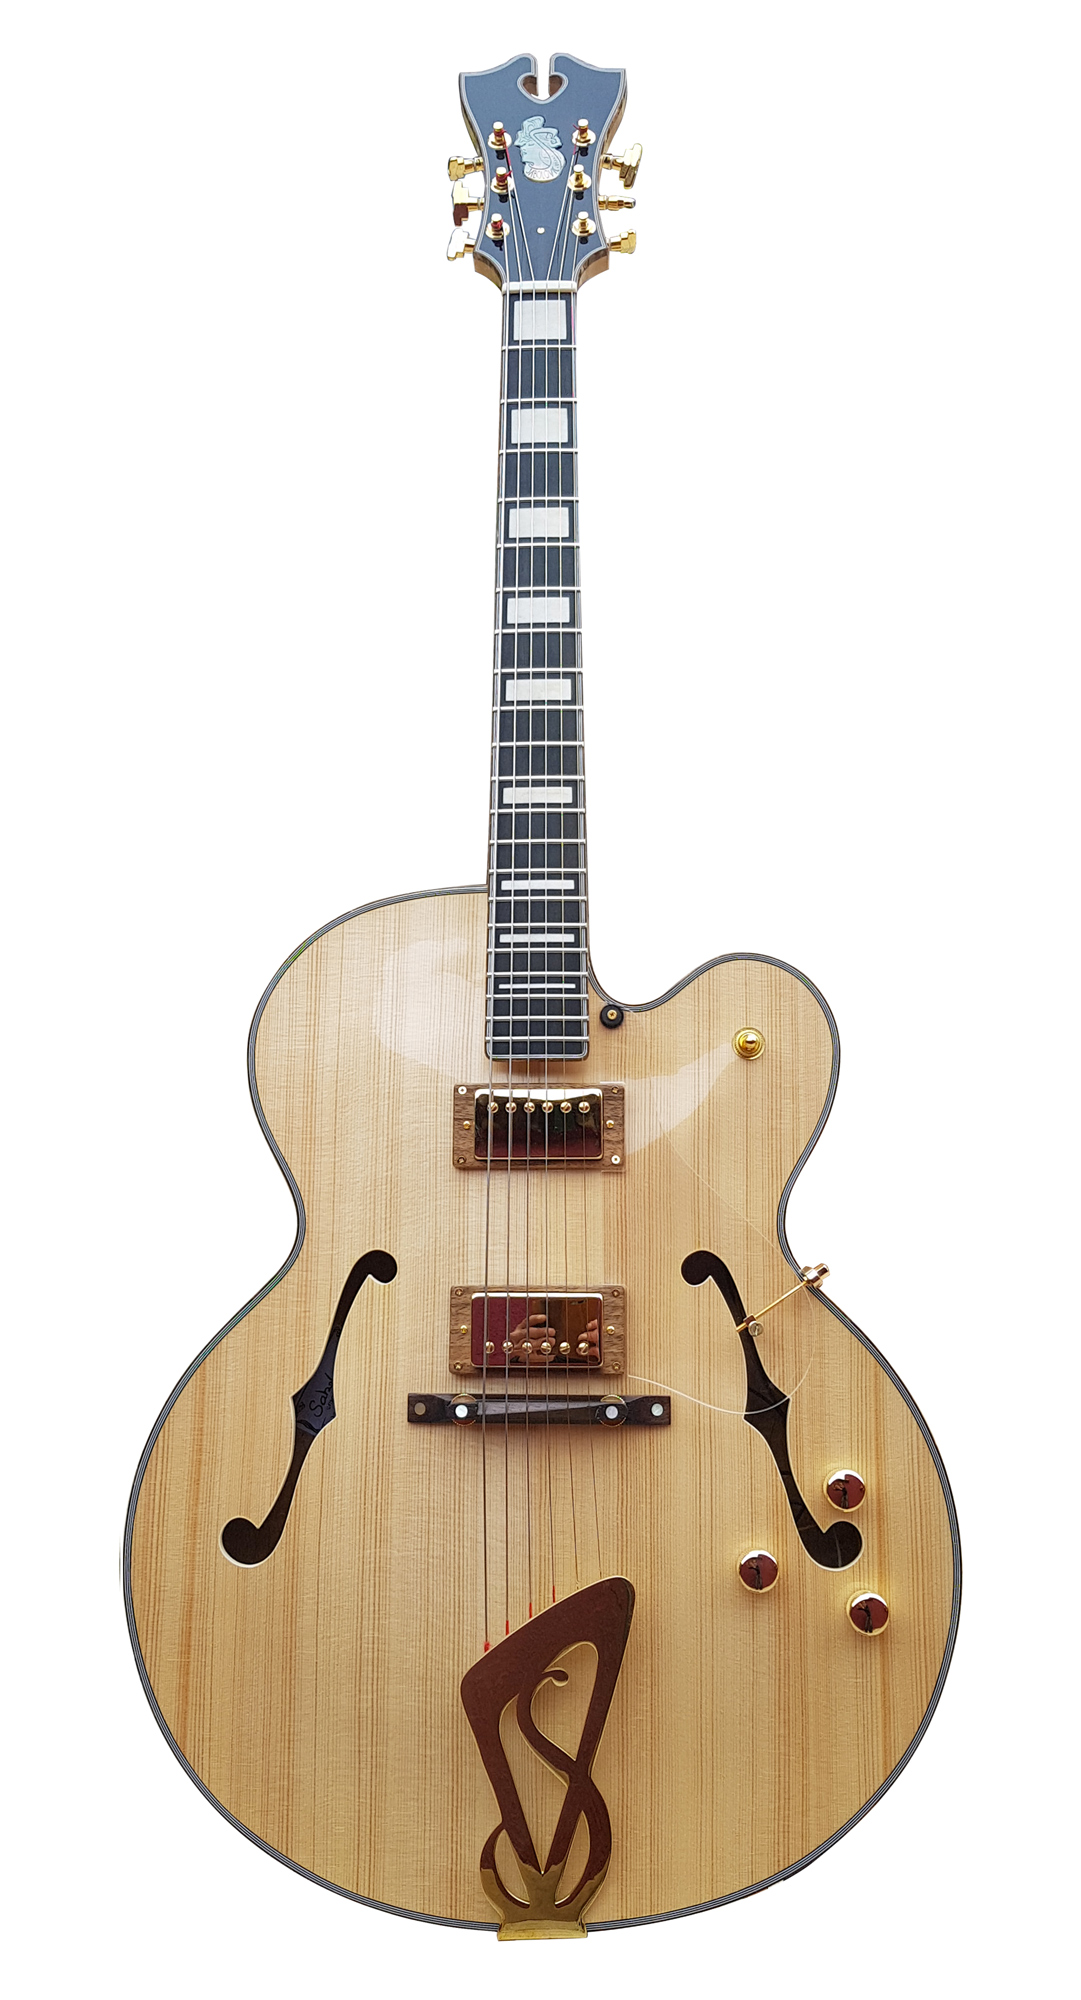 Ella, the jazzbox guitar model from Sabolovic Lutherie france